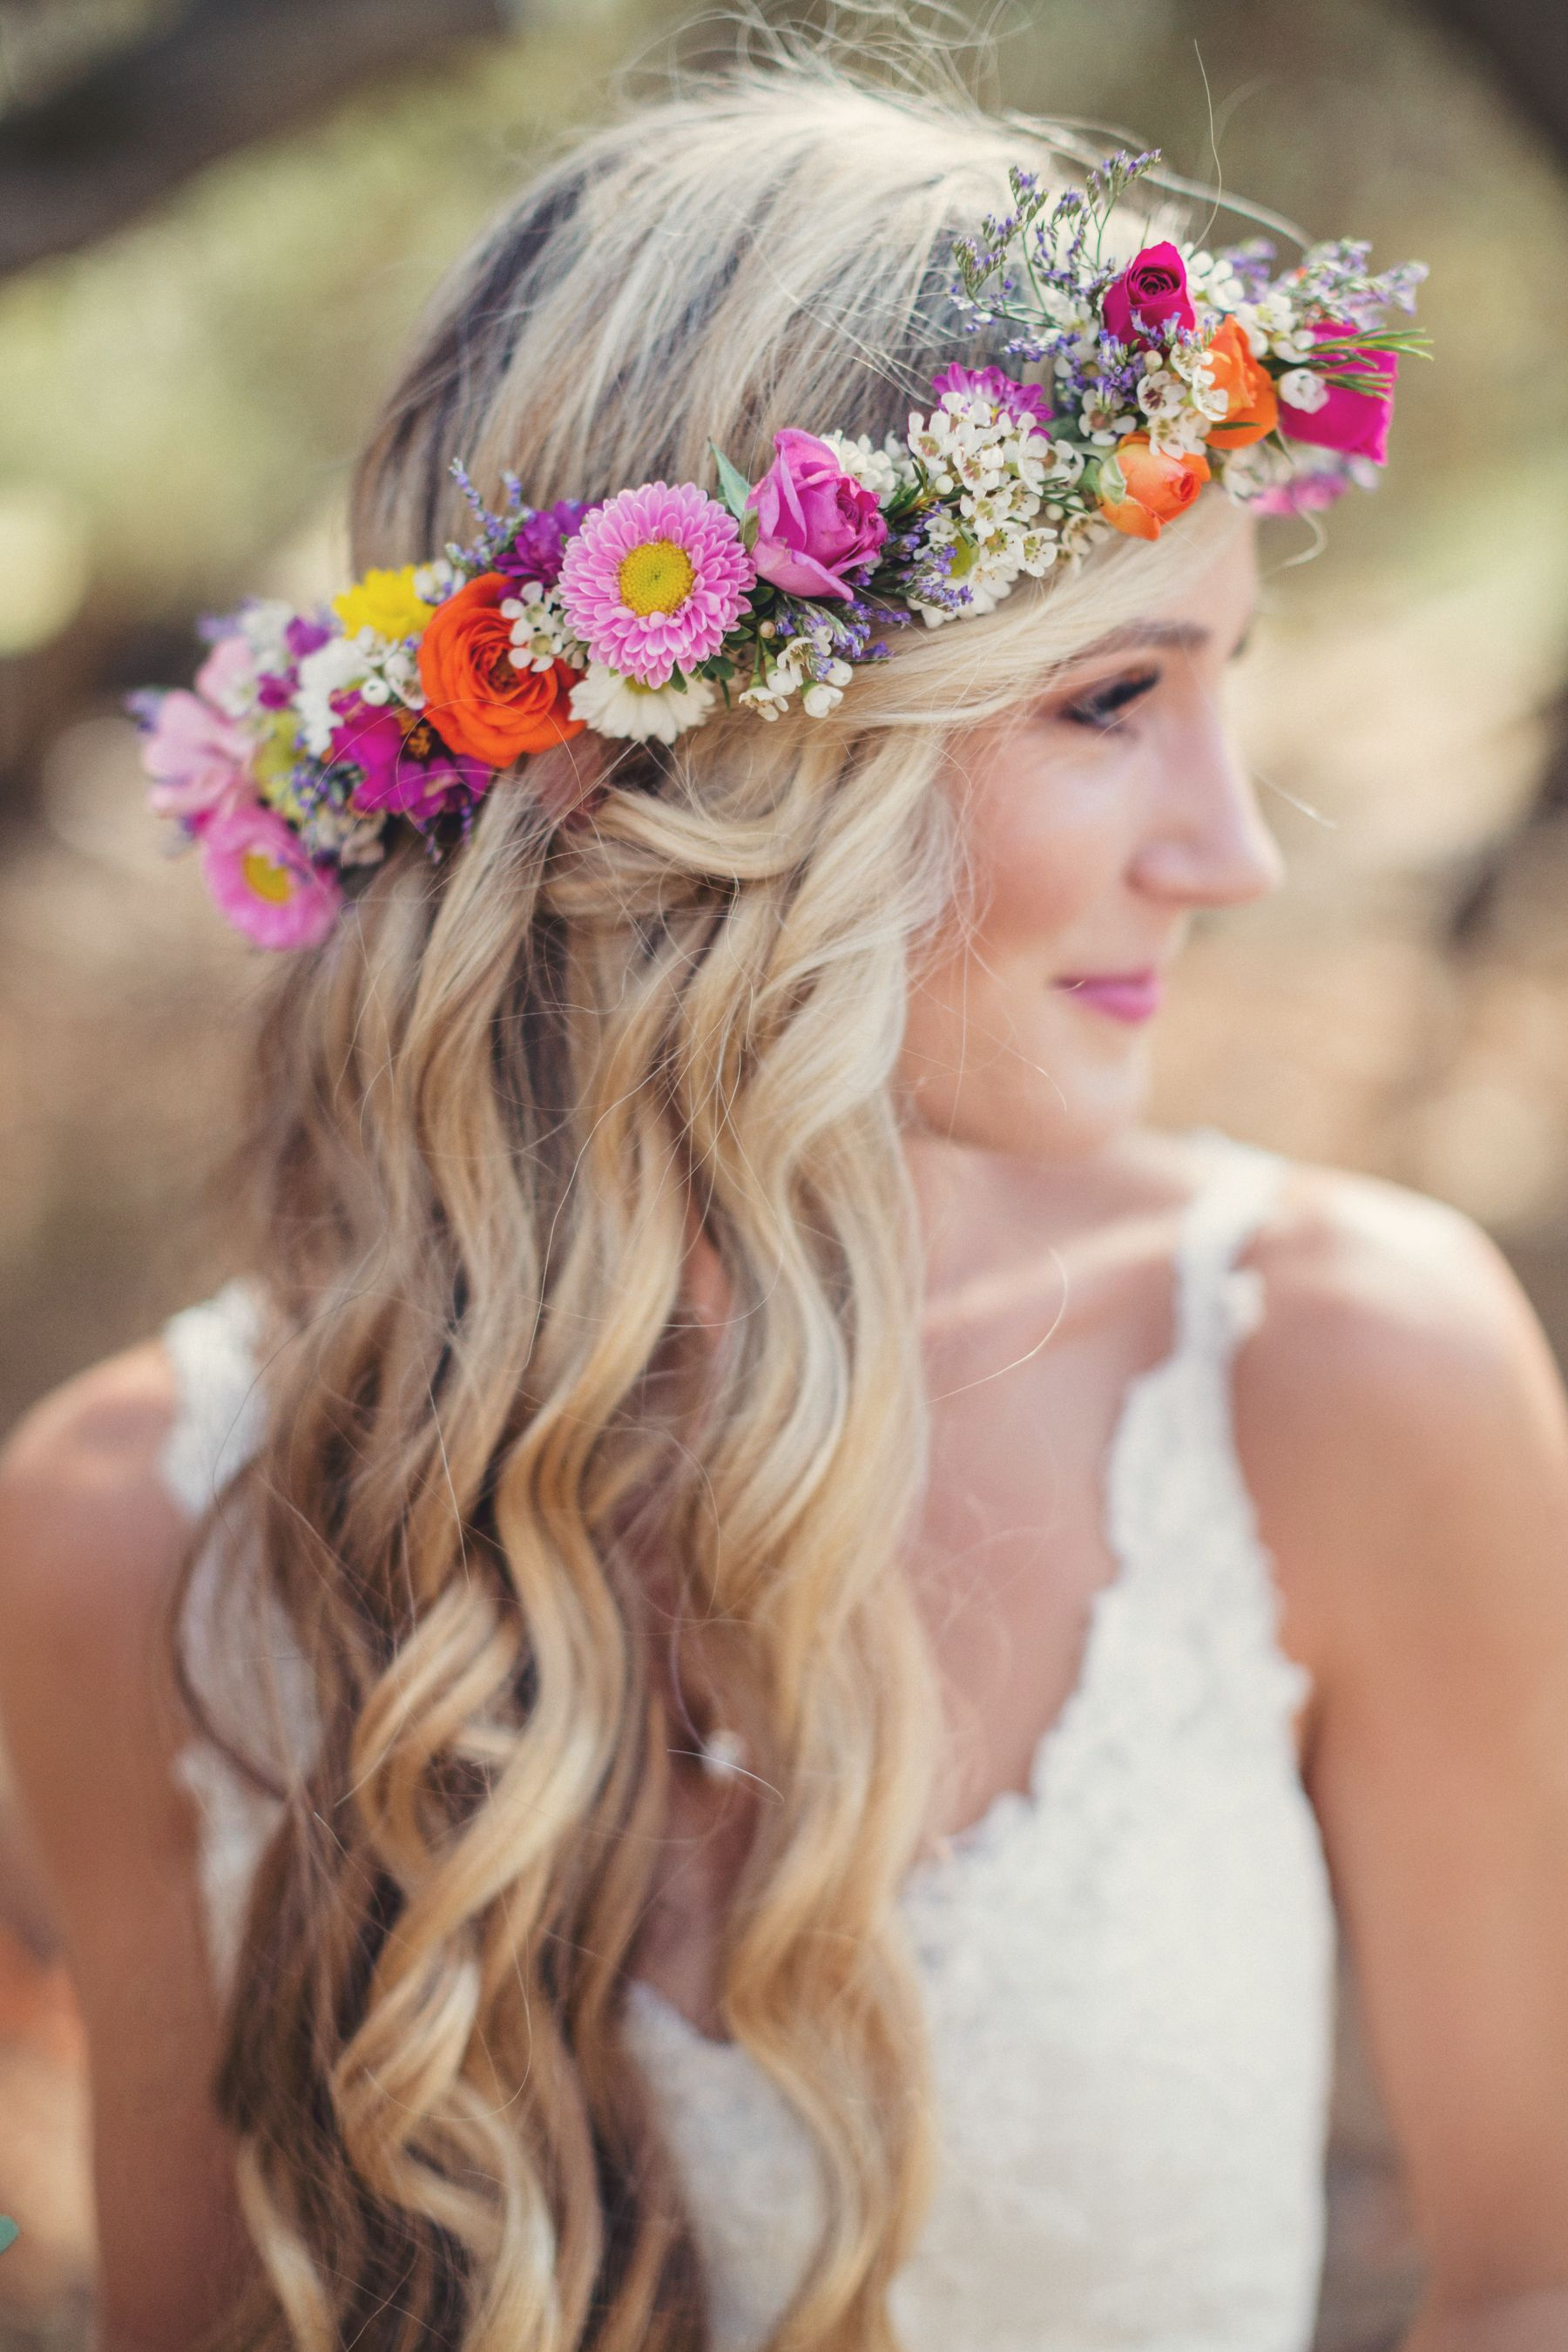 Boho Chic Has Never Looked So Pretty | Flower crown ...